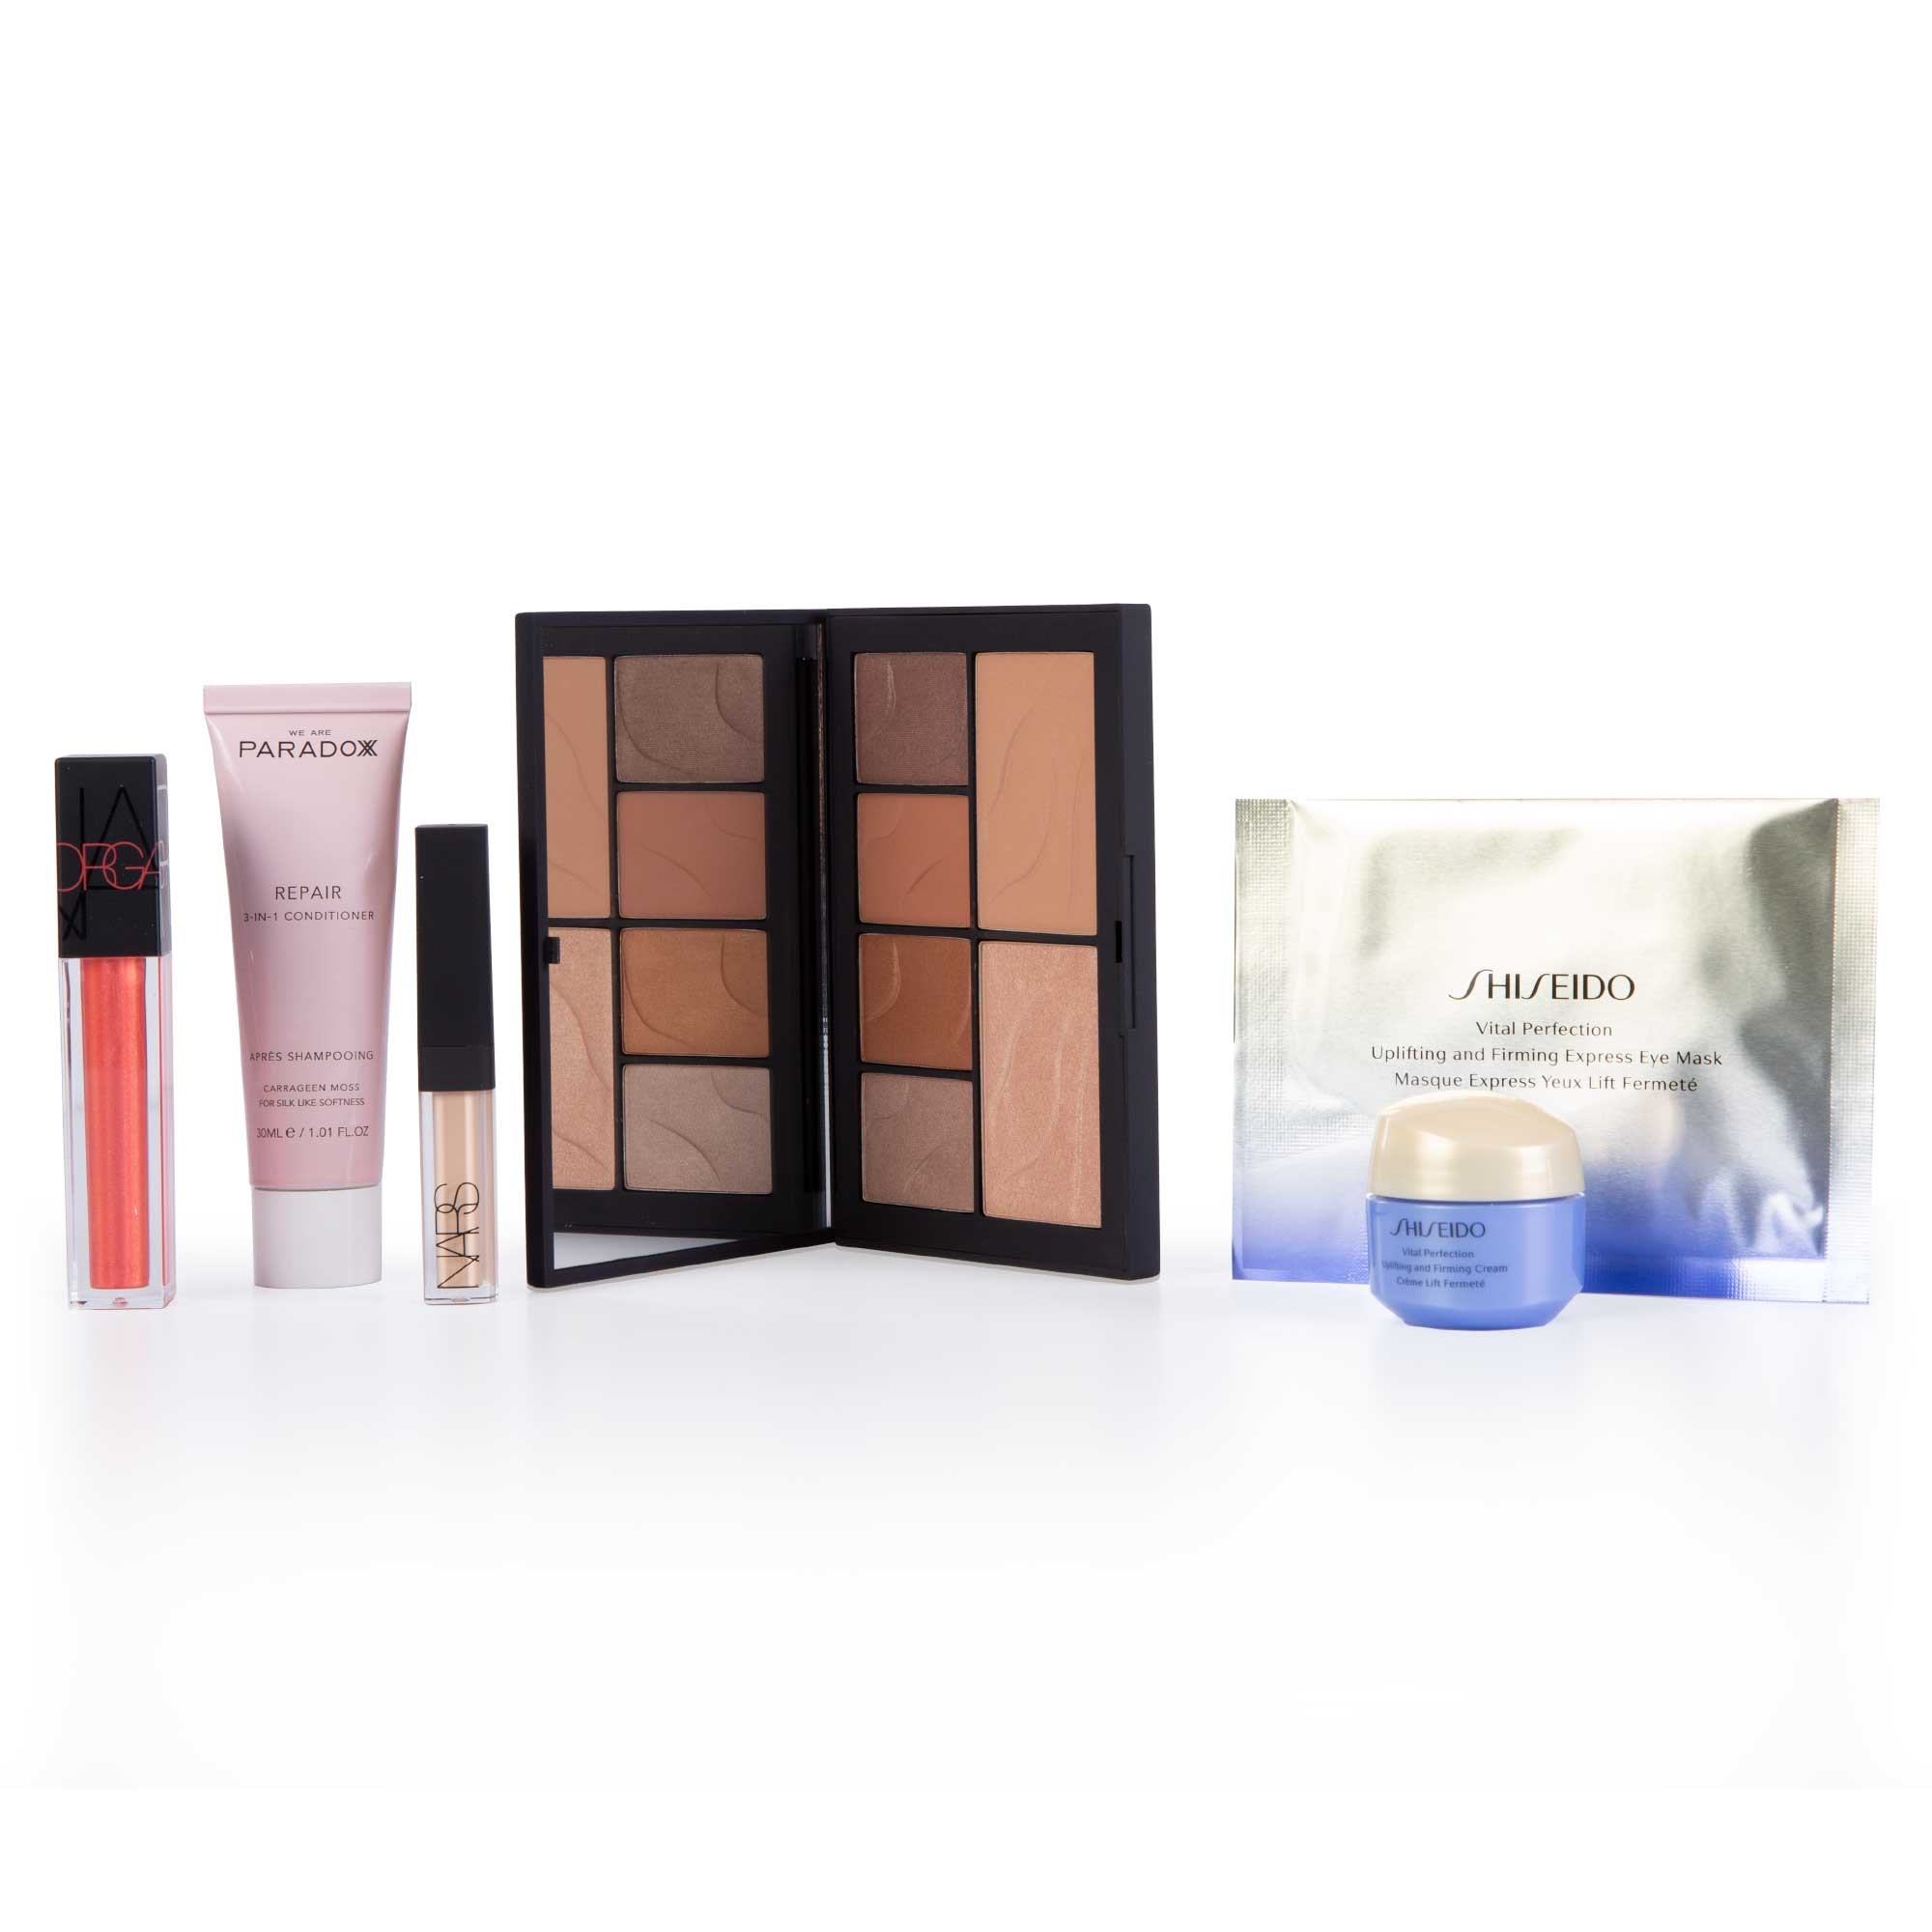 ALL TIME CARE & GLOW SET 1